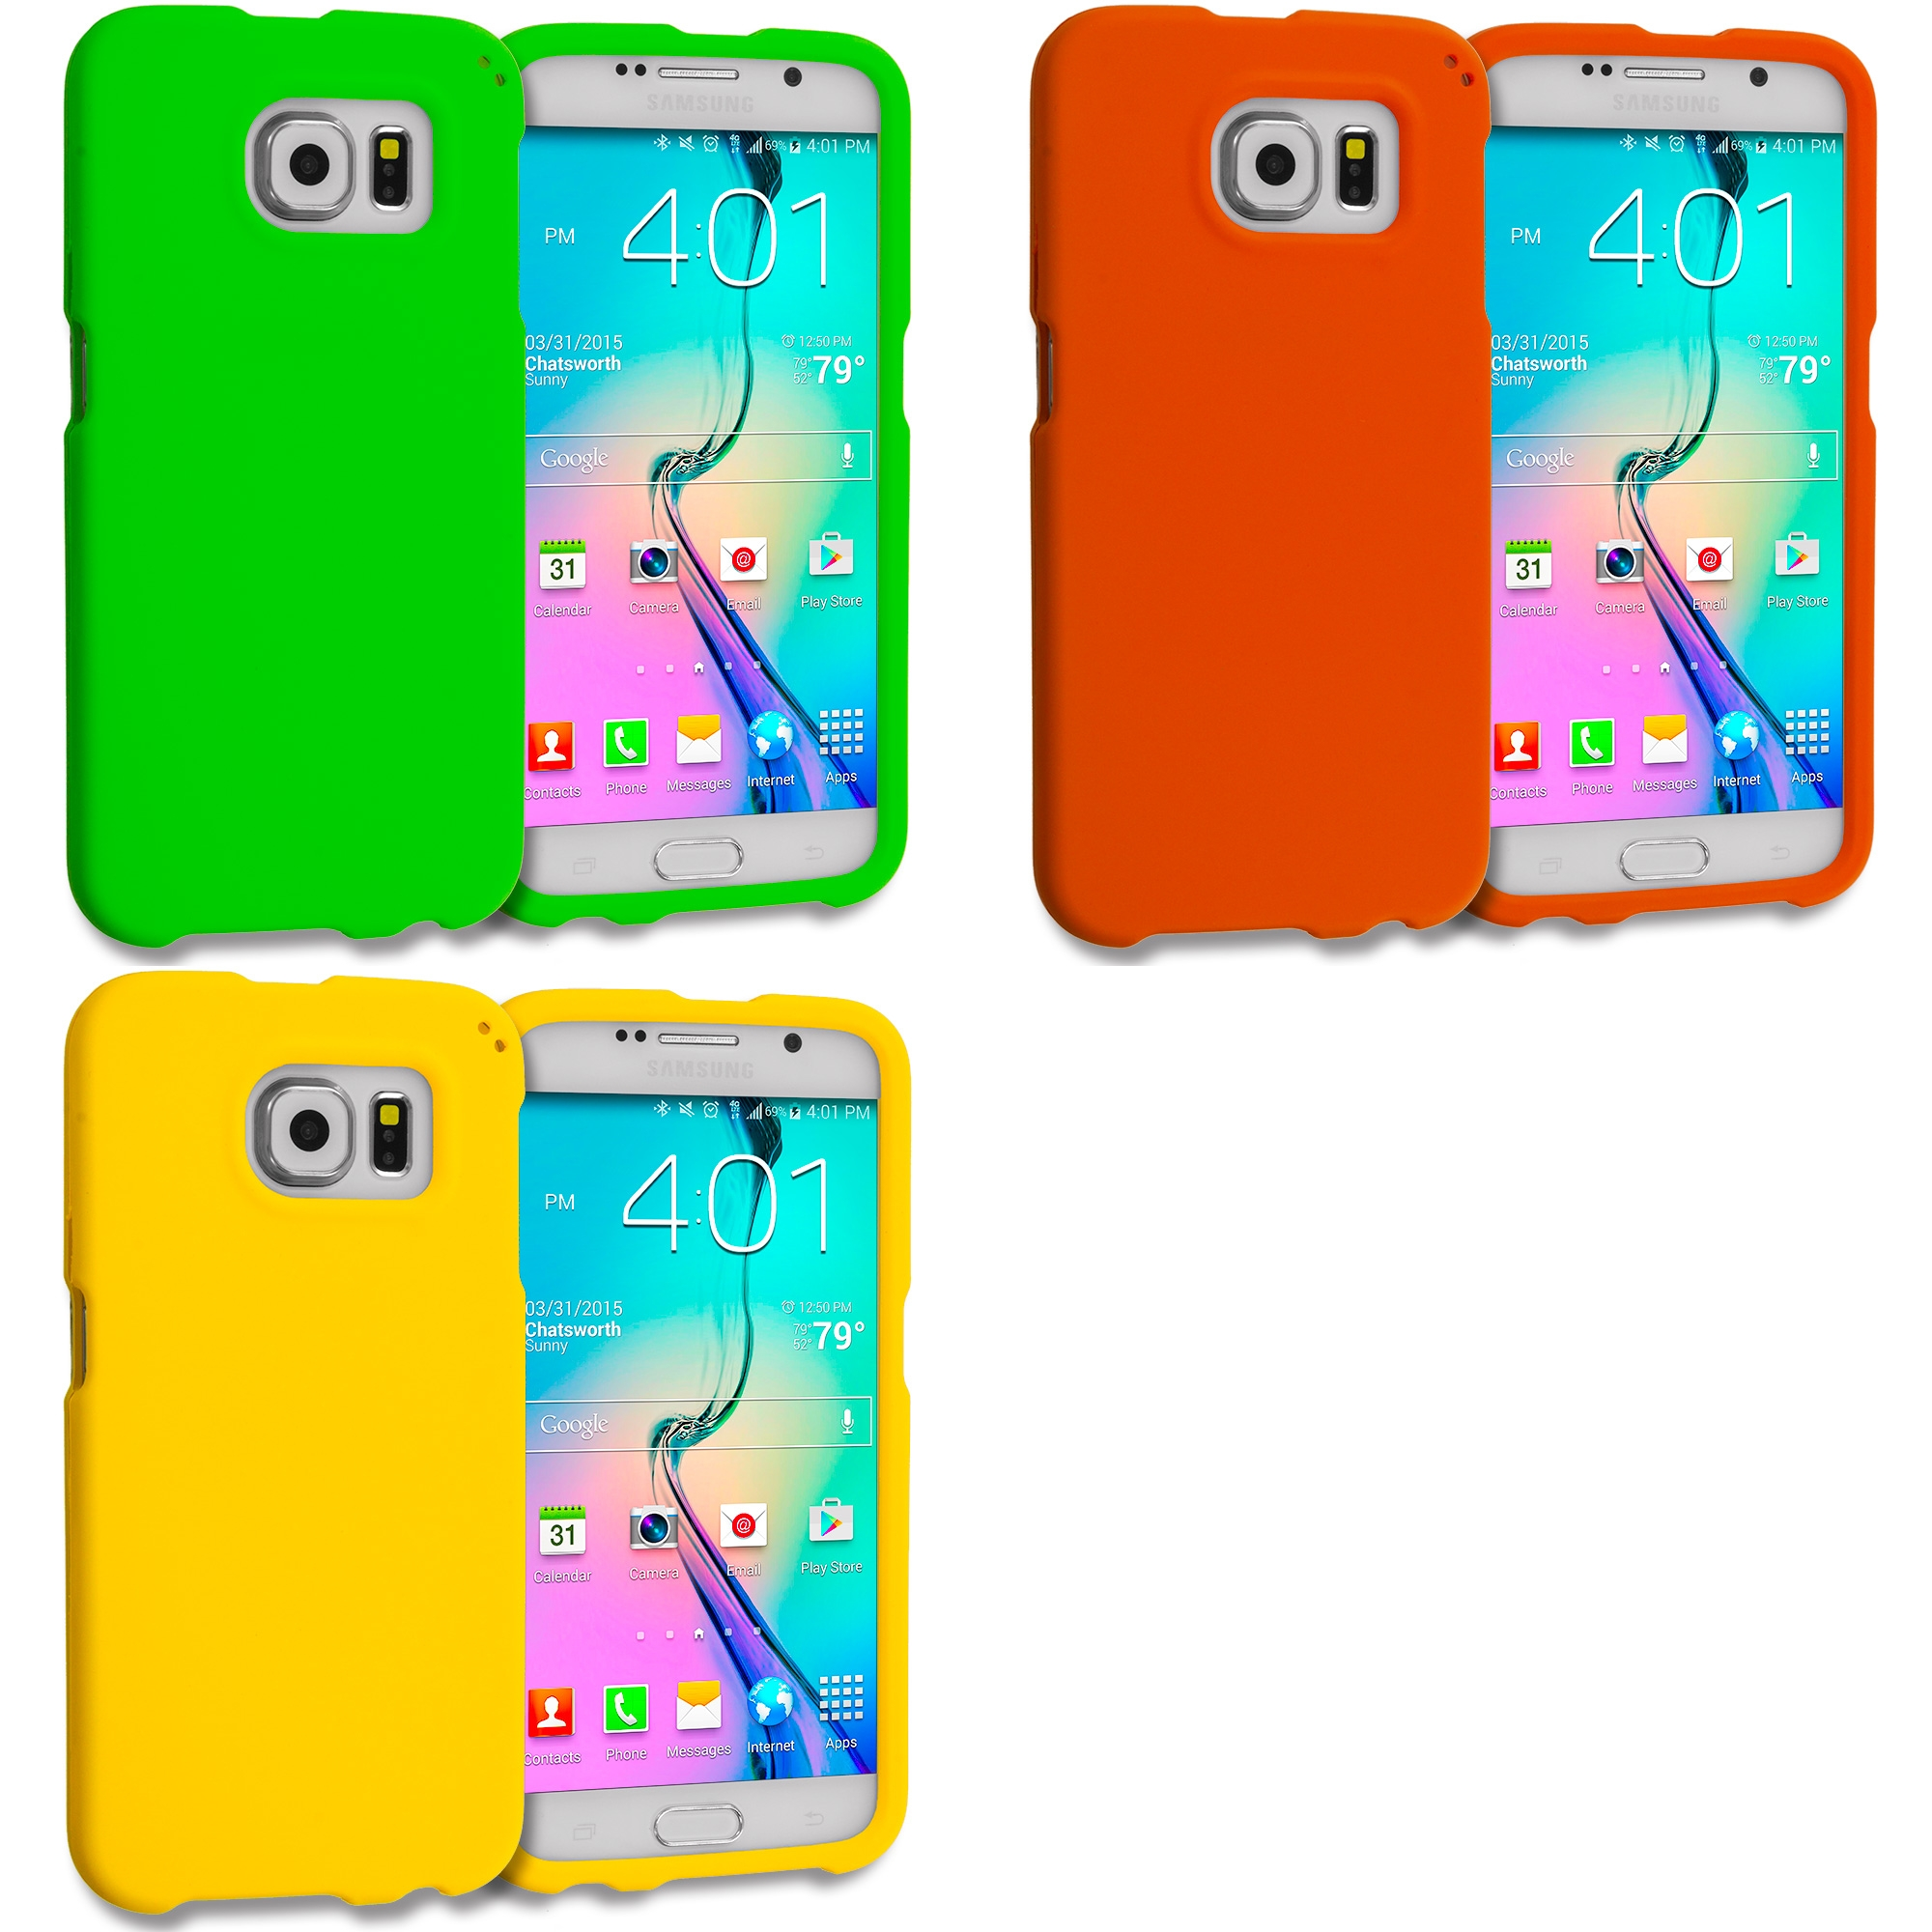 Samsung Galaxy S6 Combo Pack : Neon Green Hard Rubberized Case Cover